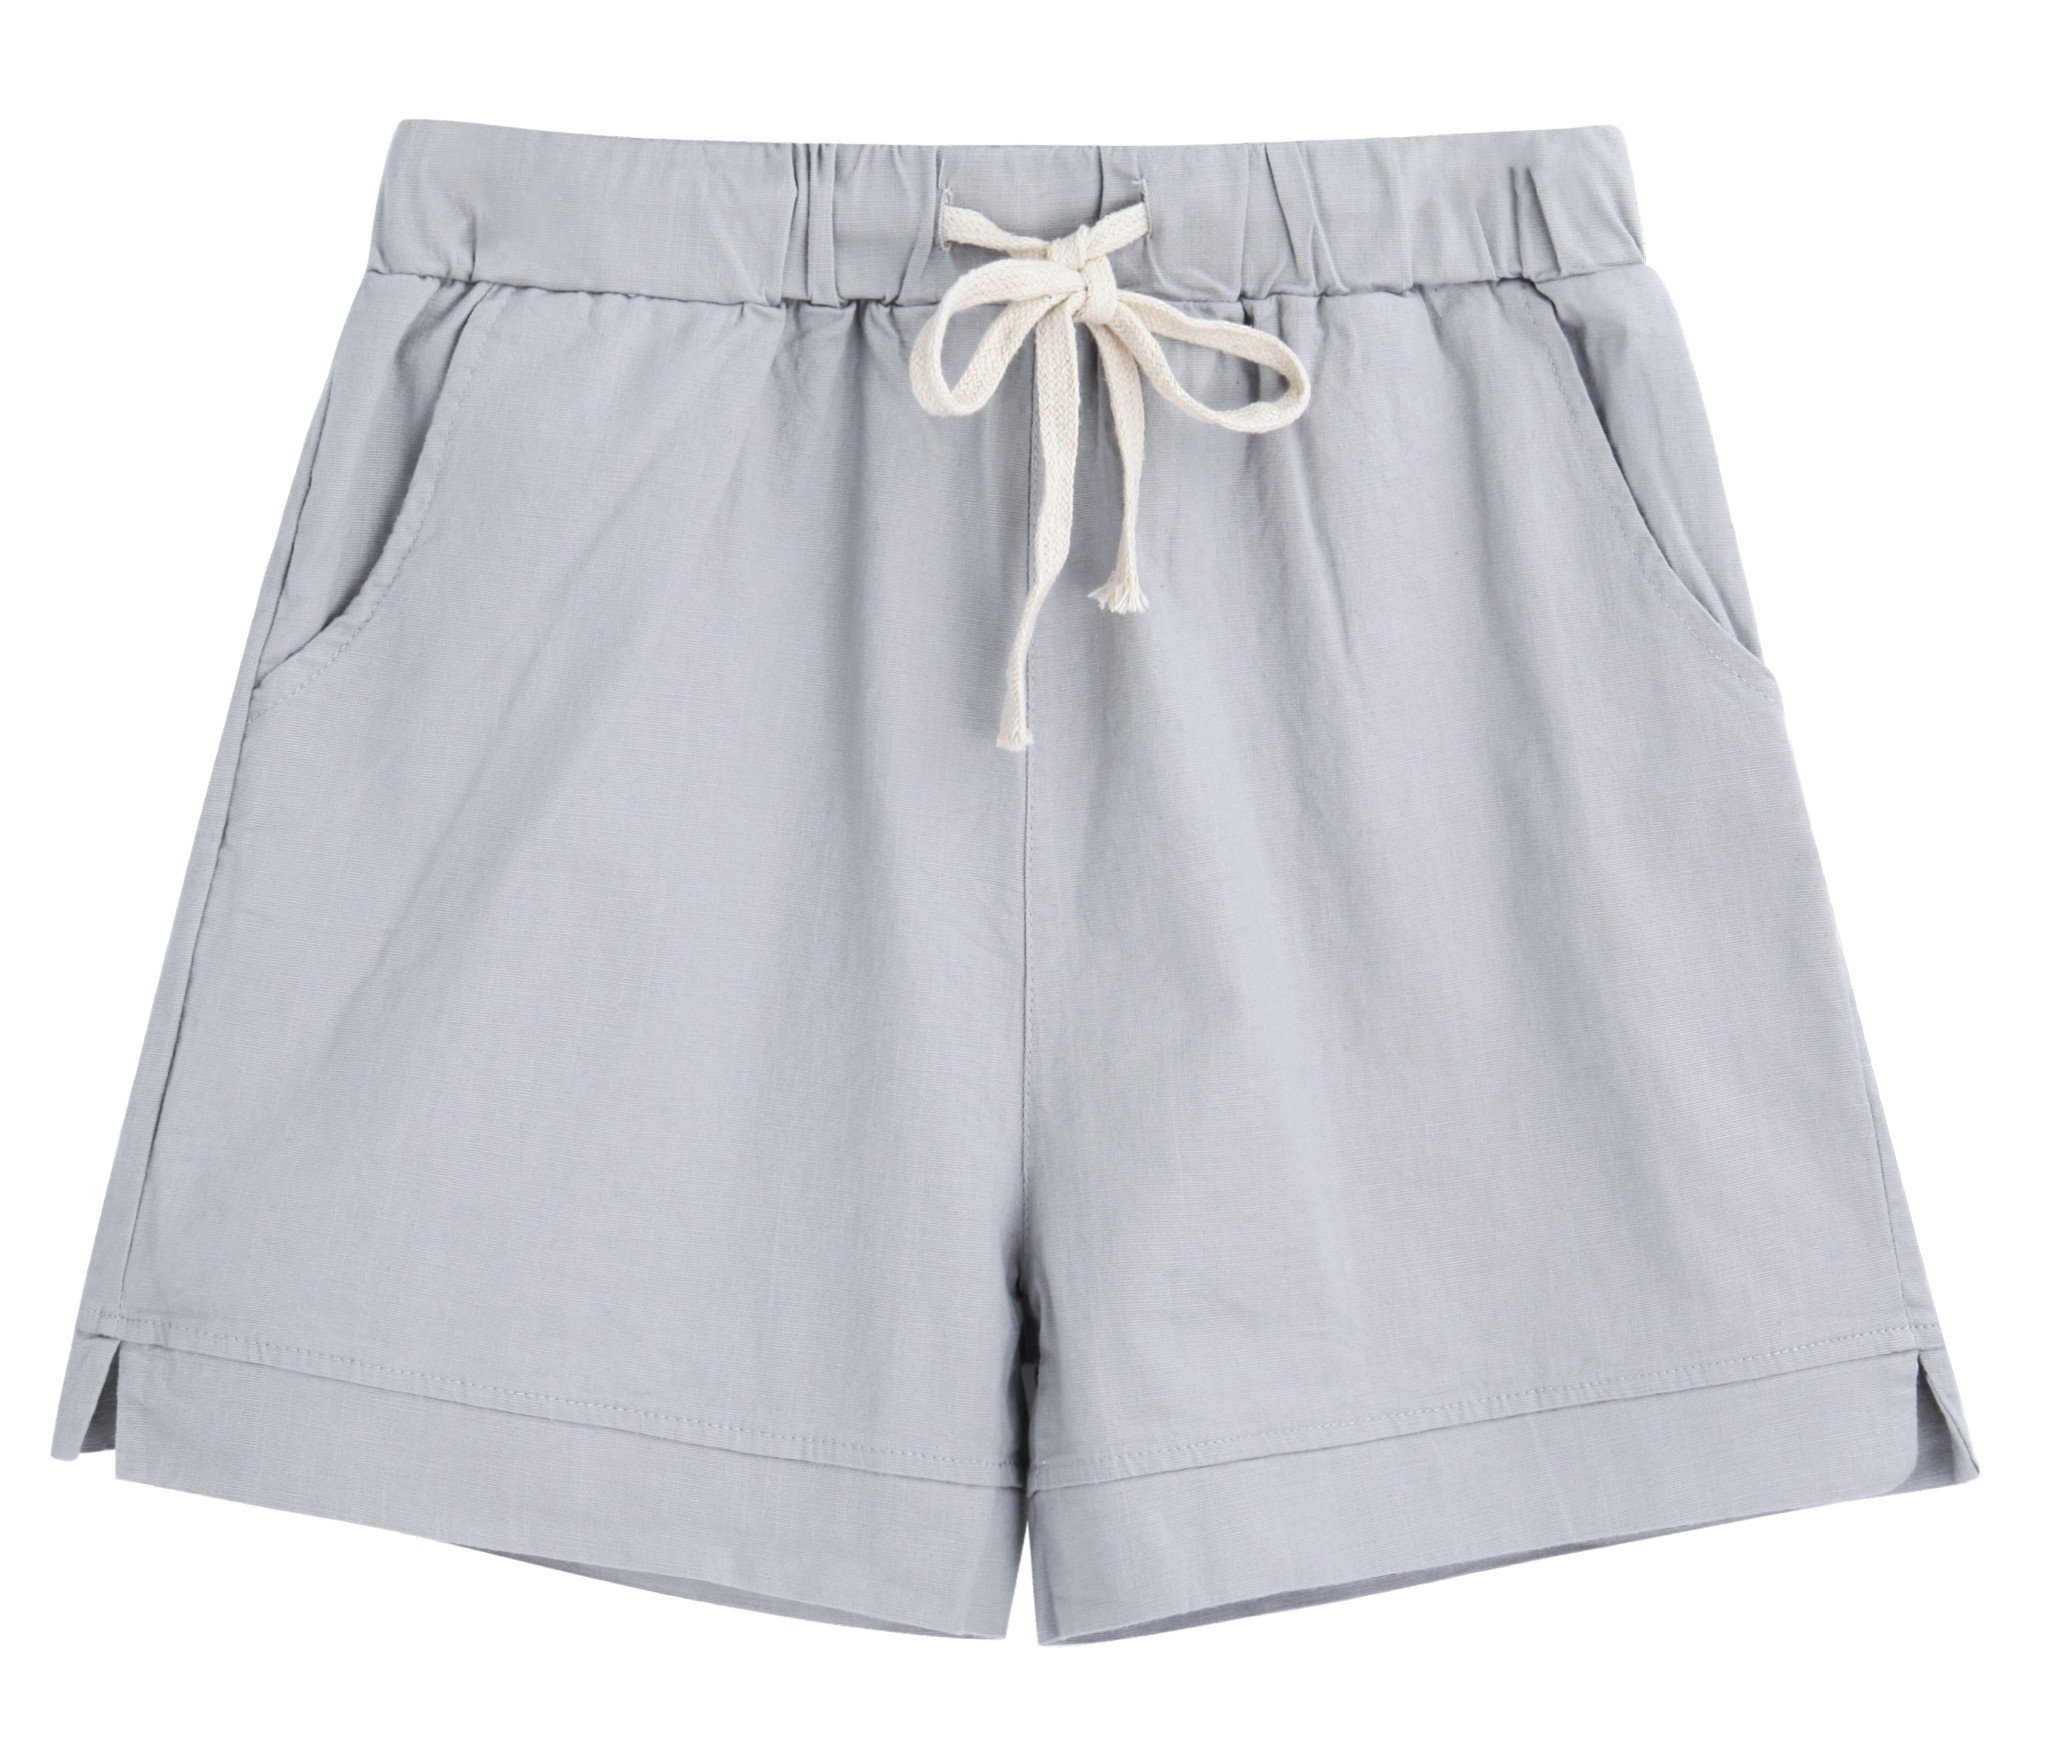 Yknktstc Womens Elastic Waist Cotton Linen Casual Beach Shorts with Drawstring US 10 Style 2 Grey